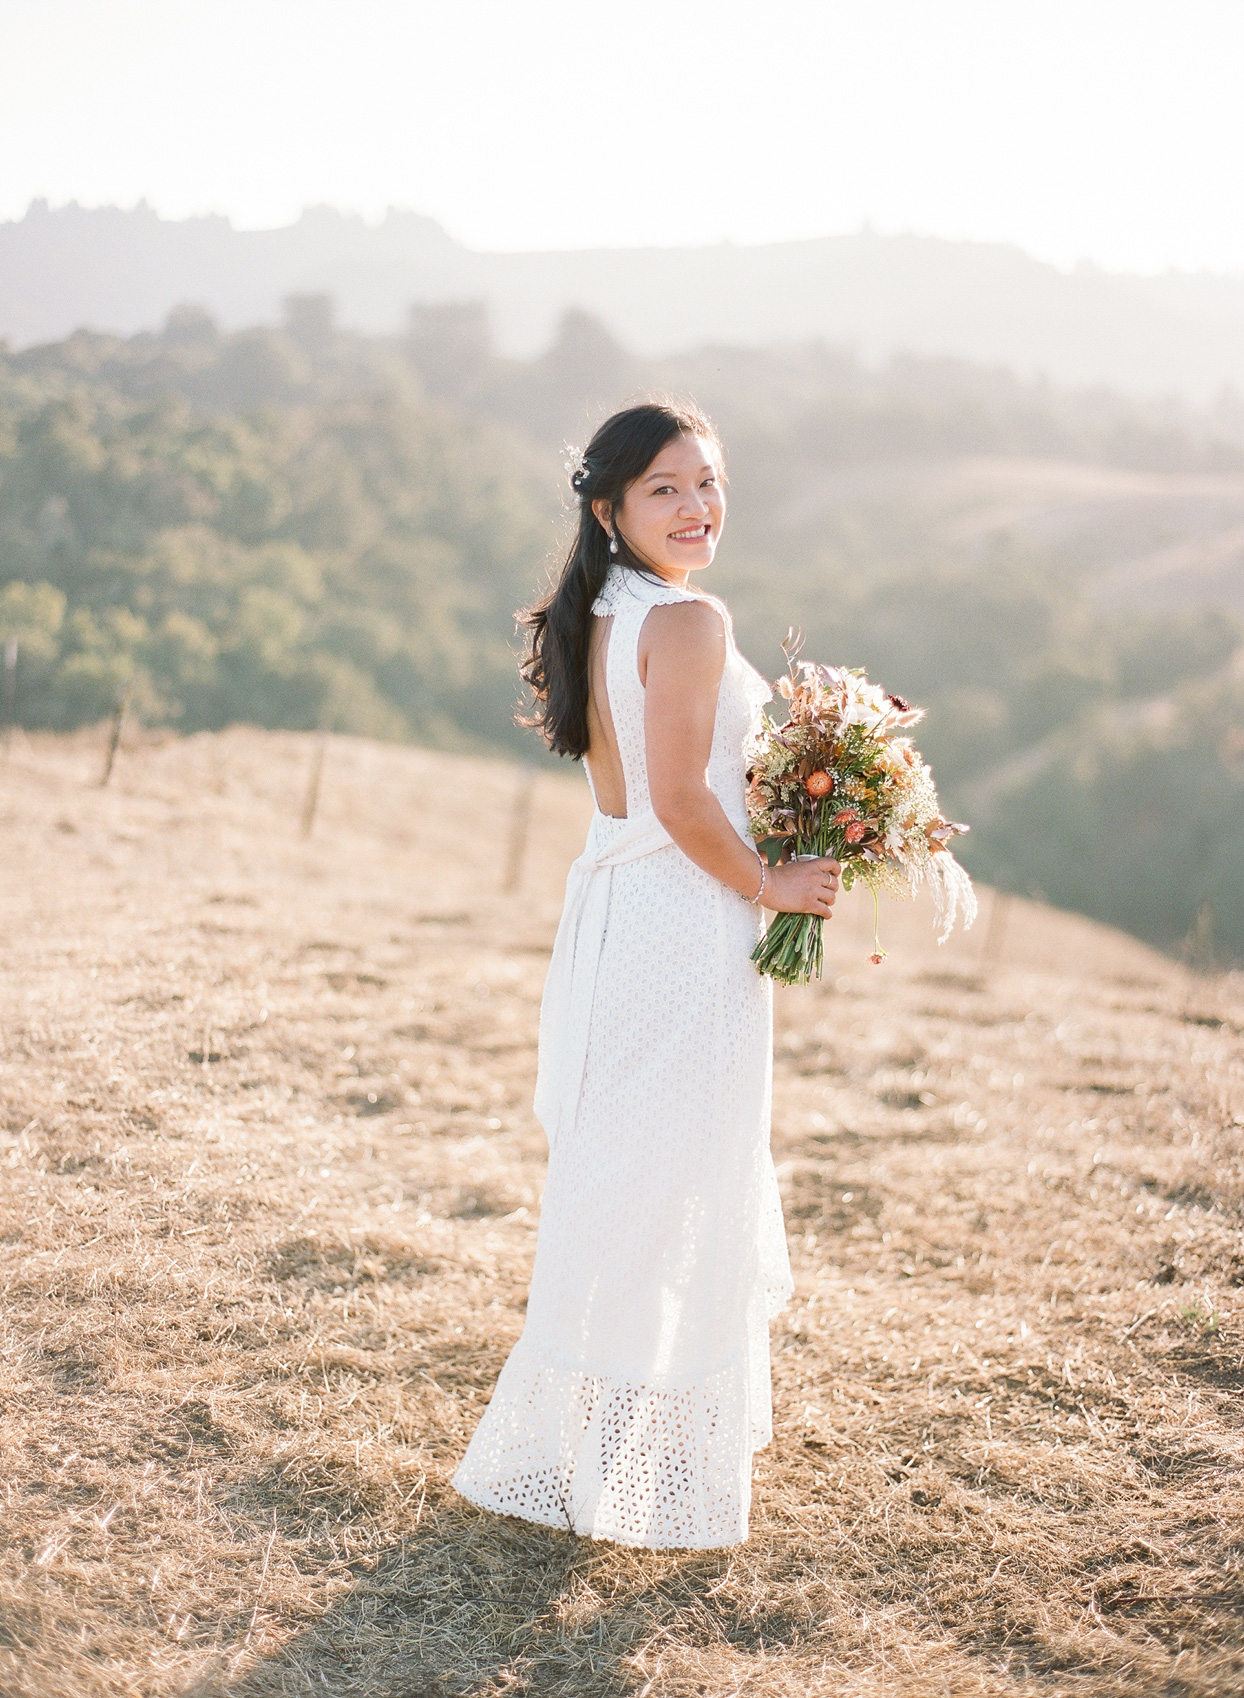 bride in wedding dress with floral bouquet